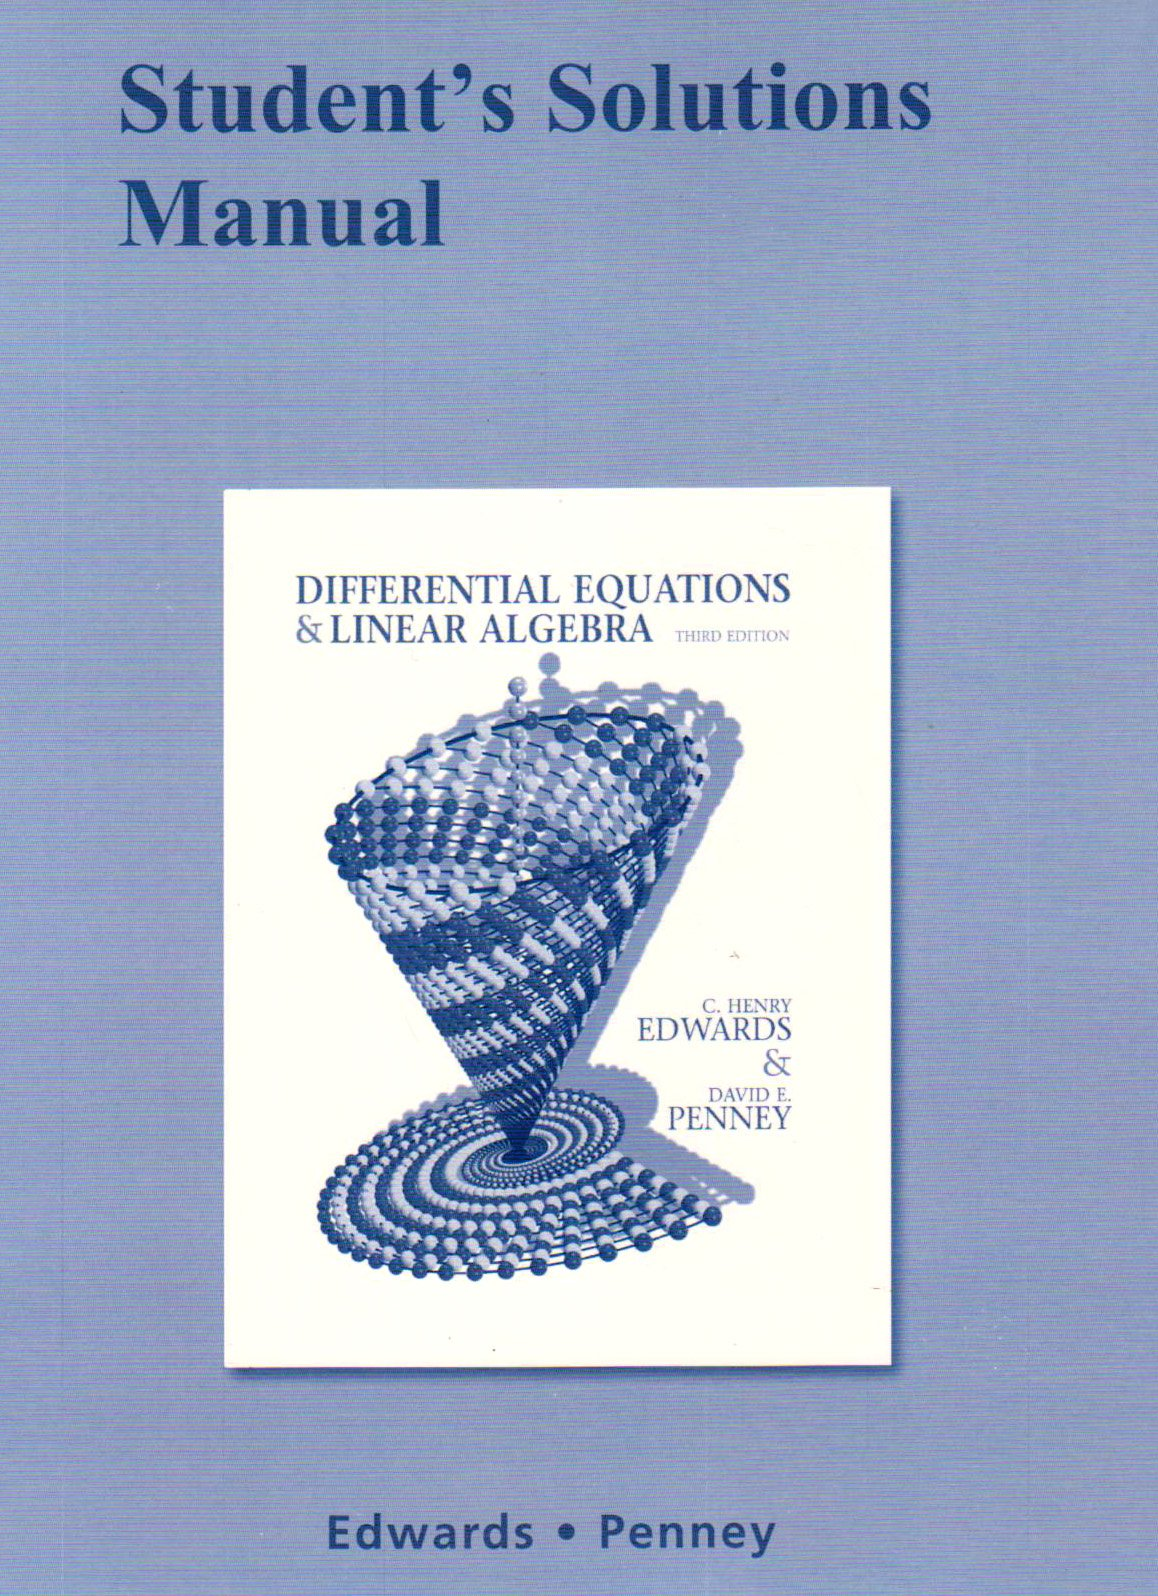 Student Solutions Manual for Differential Equations and Linear Algebra:  Amazon.co.uk: C. Henry Edwards, David E. Penney: 9780136054276: Books